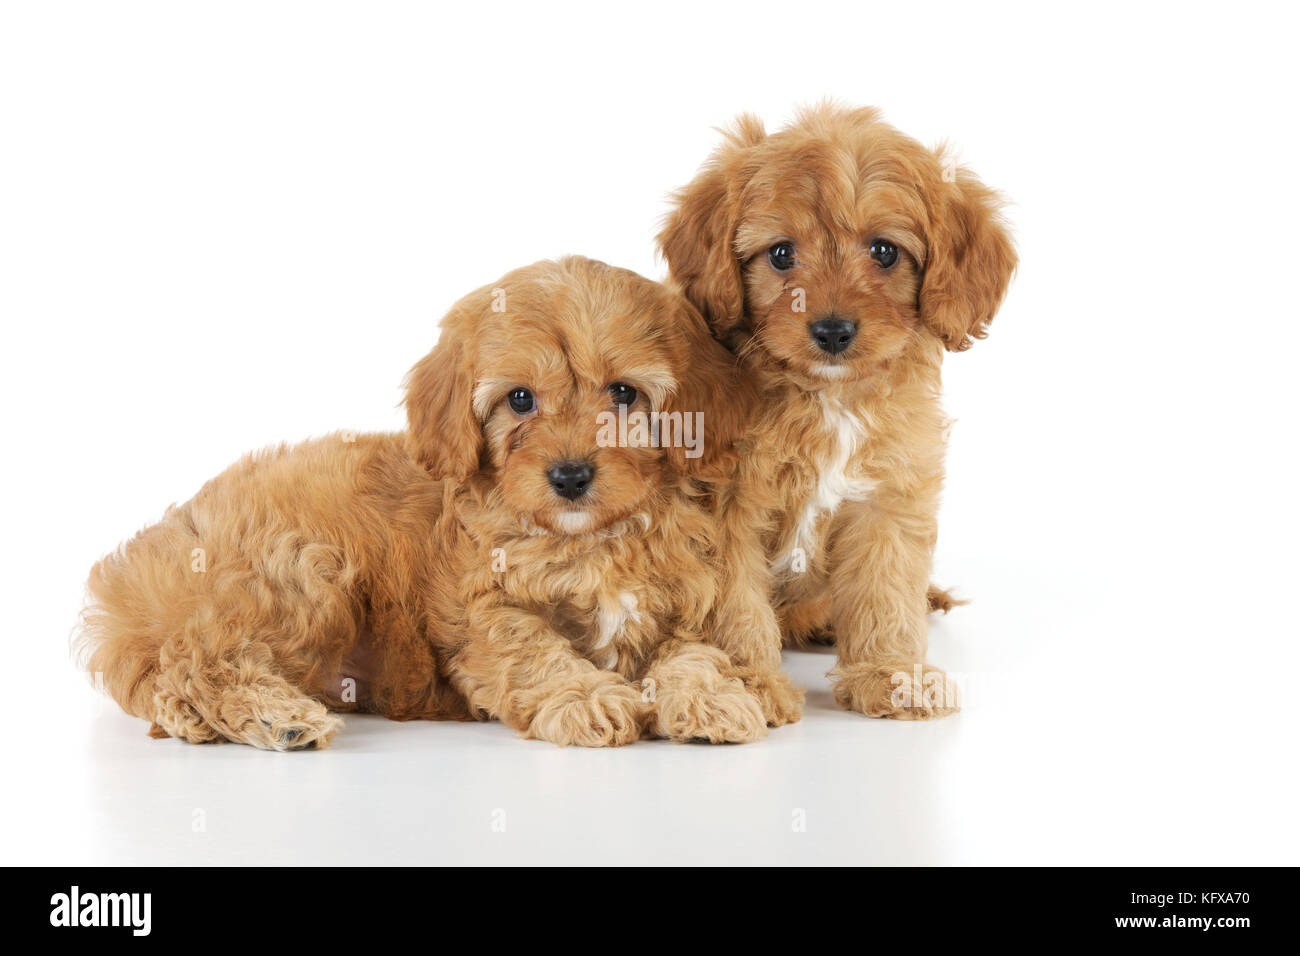 DOG. Cockerpoo puppies (Poodle X Cocker Spaniel ) 7 wks old - Stock Image